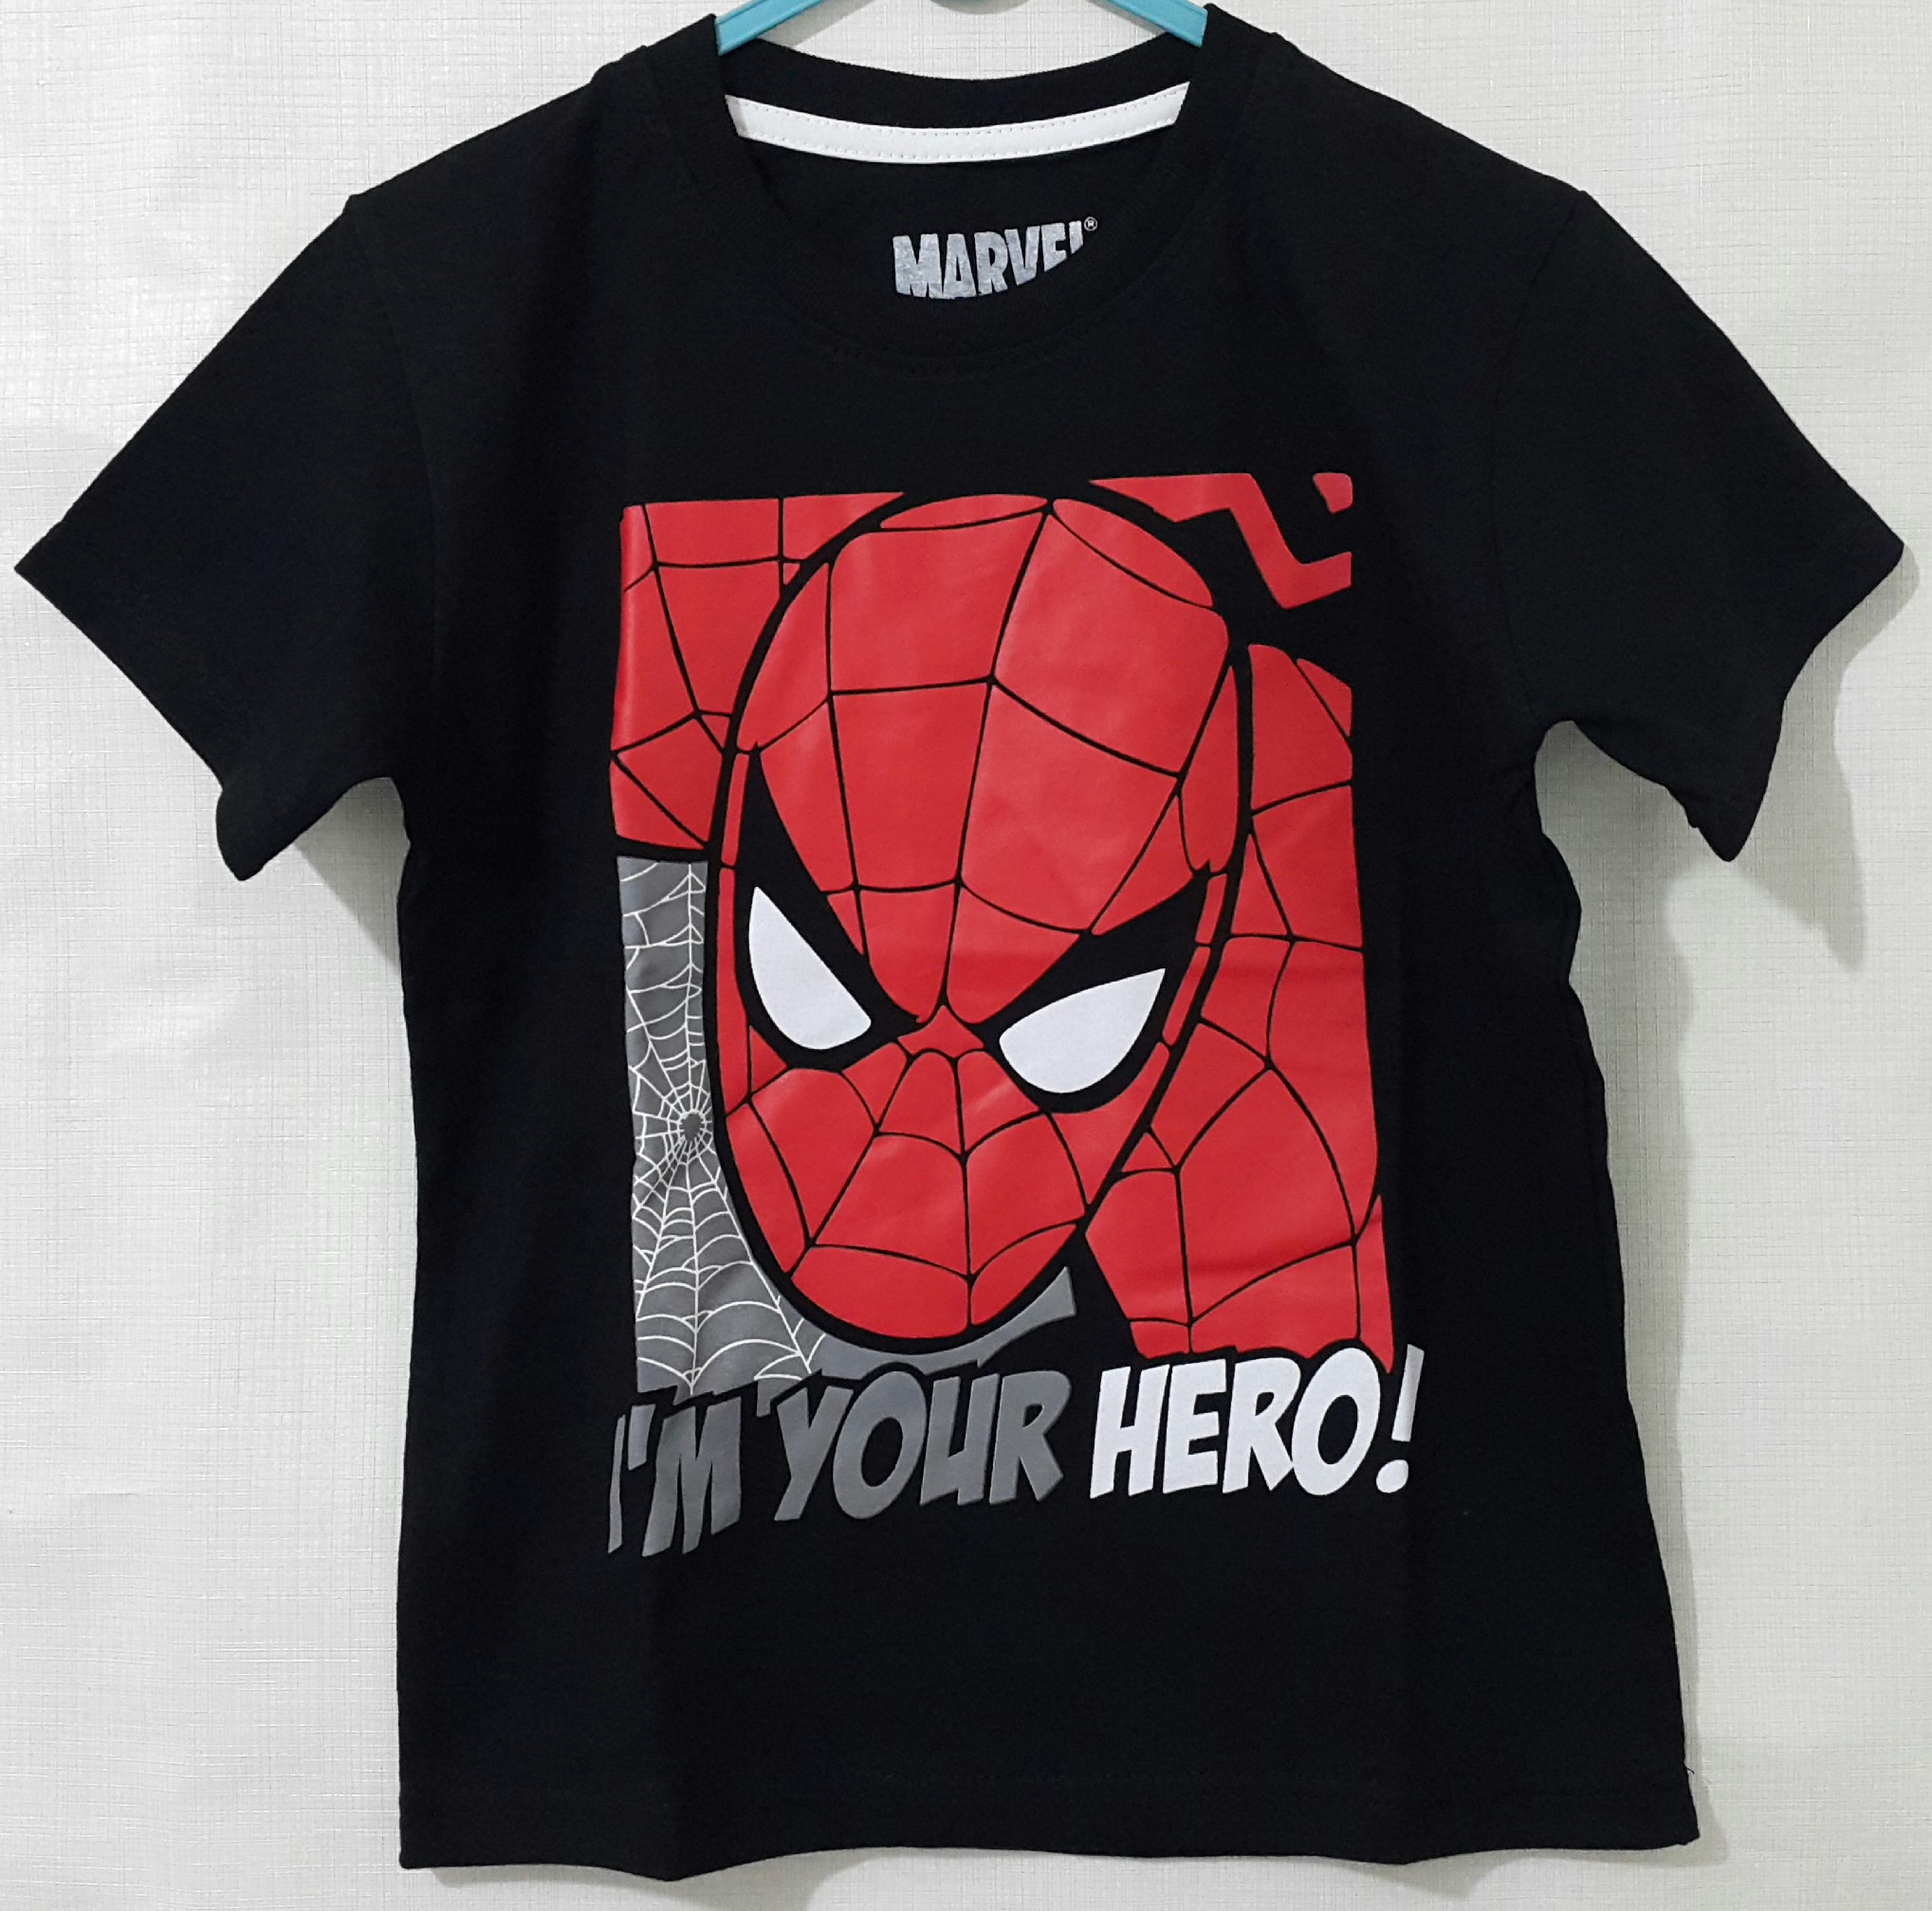 kaos marvel spiderman